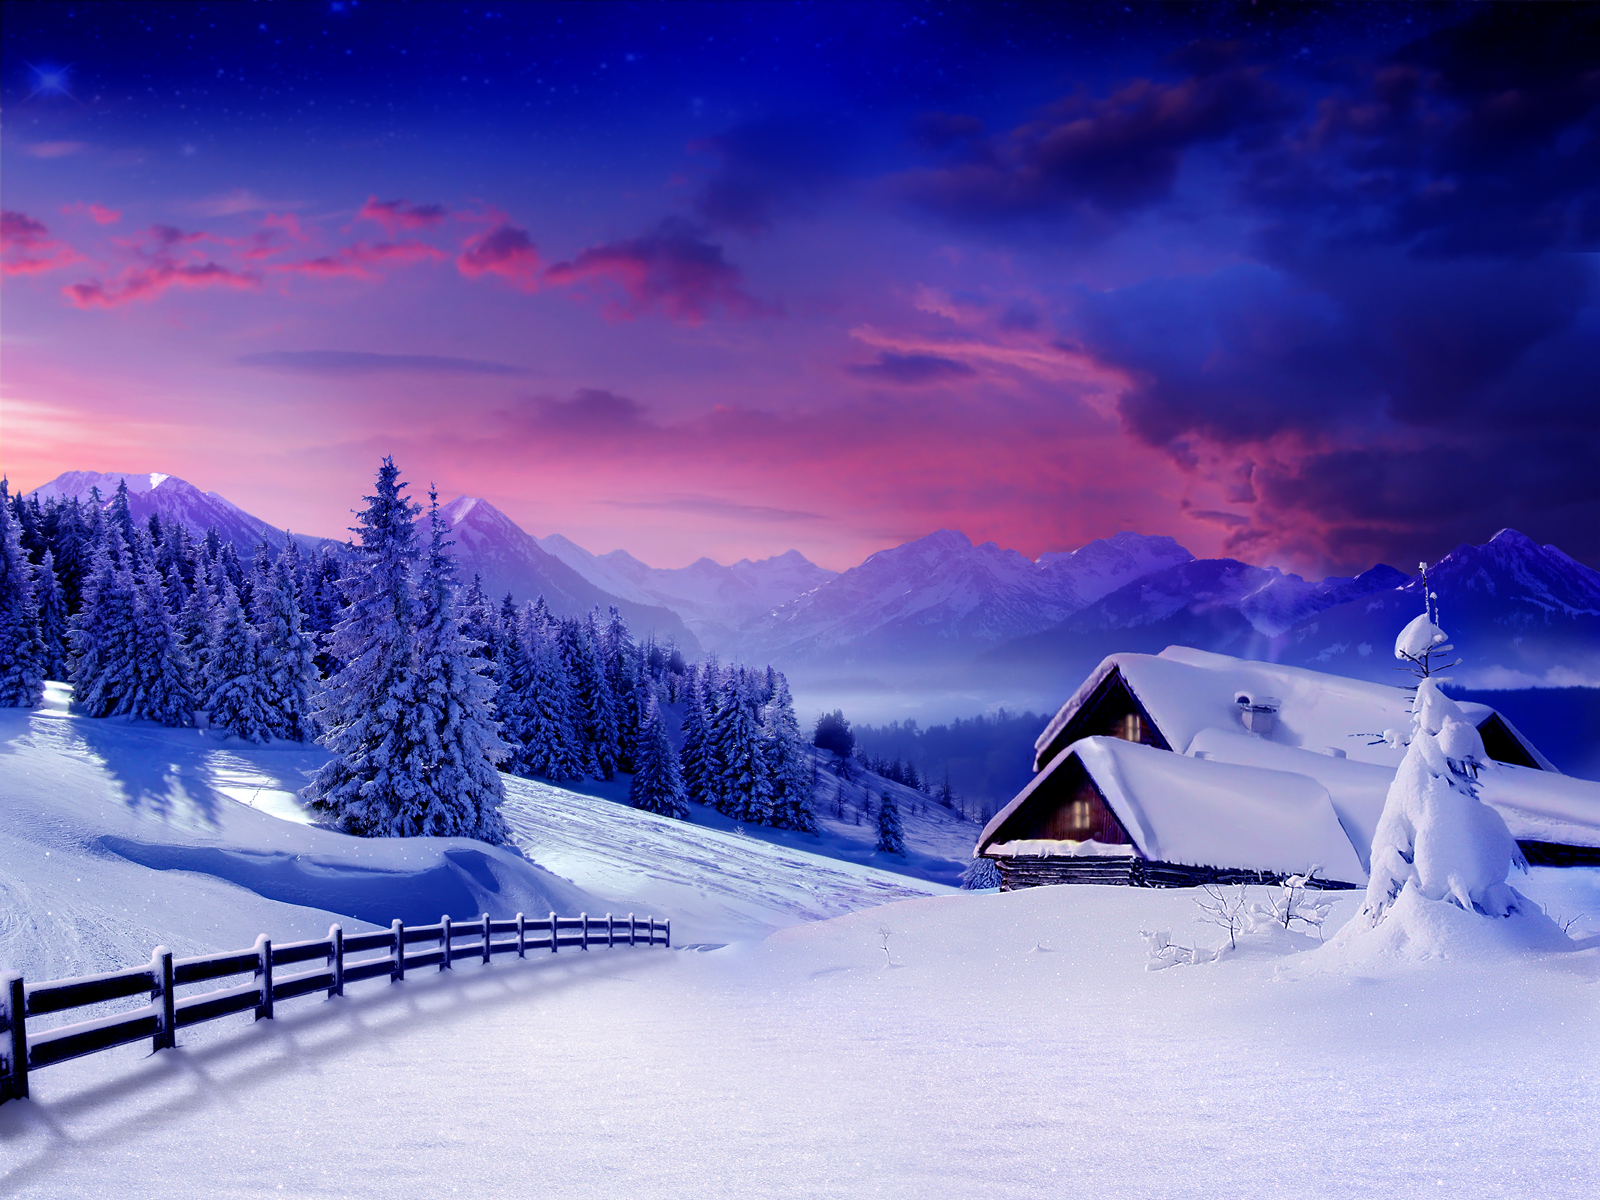 December Morning Snow wallpaper